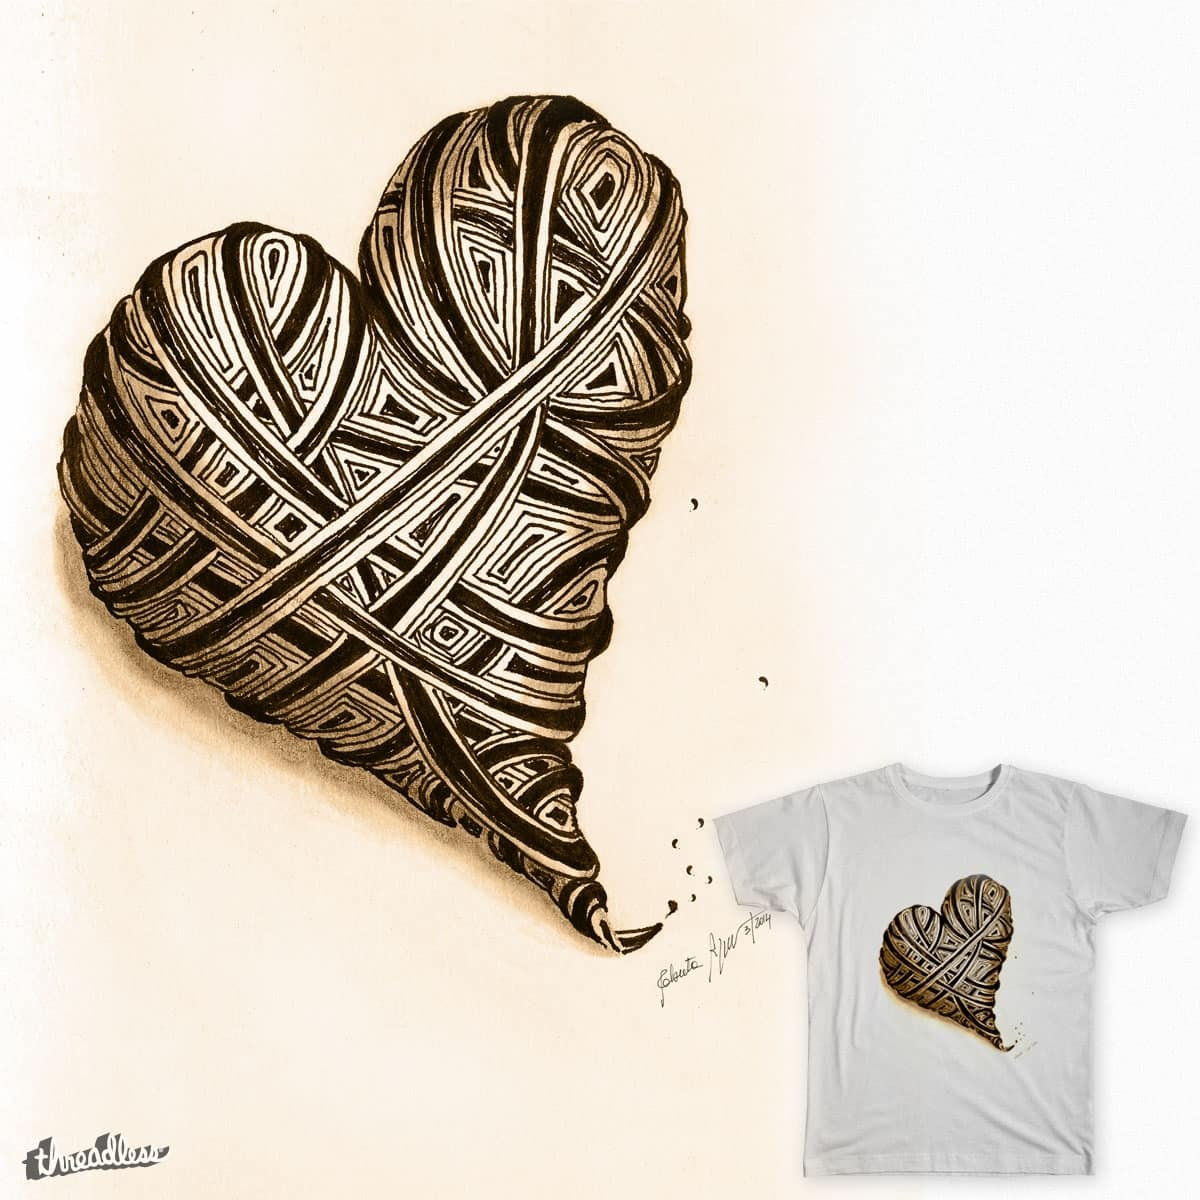 The day after by robertapizzorno on Threadless